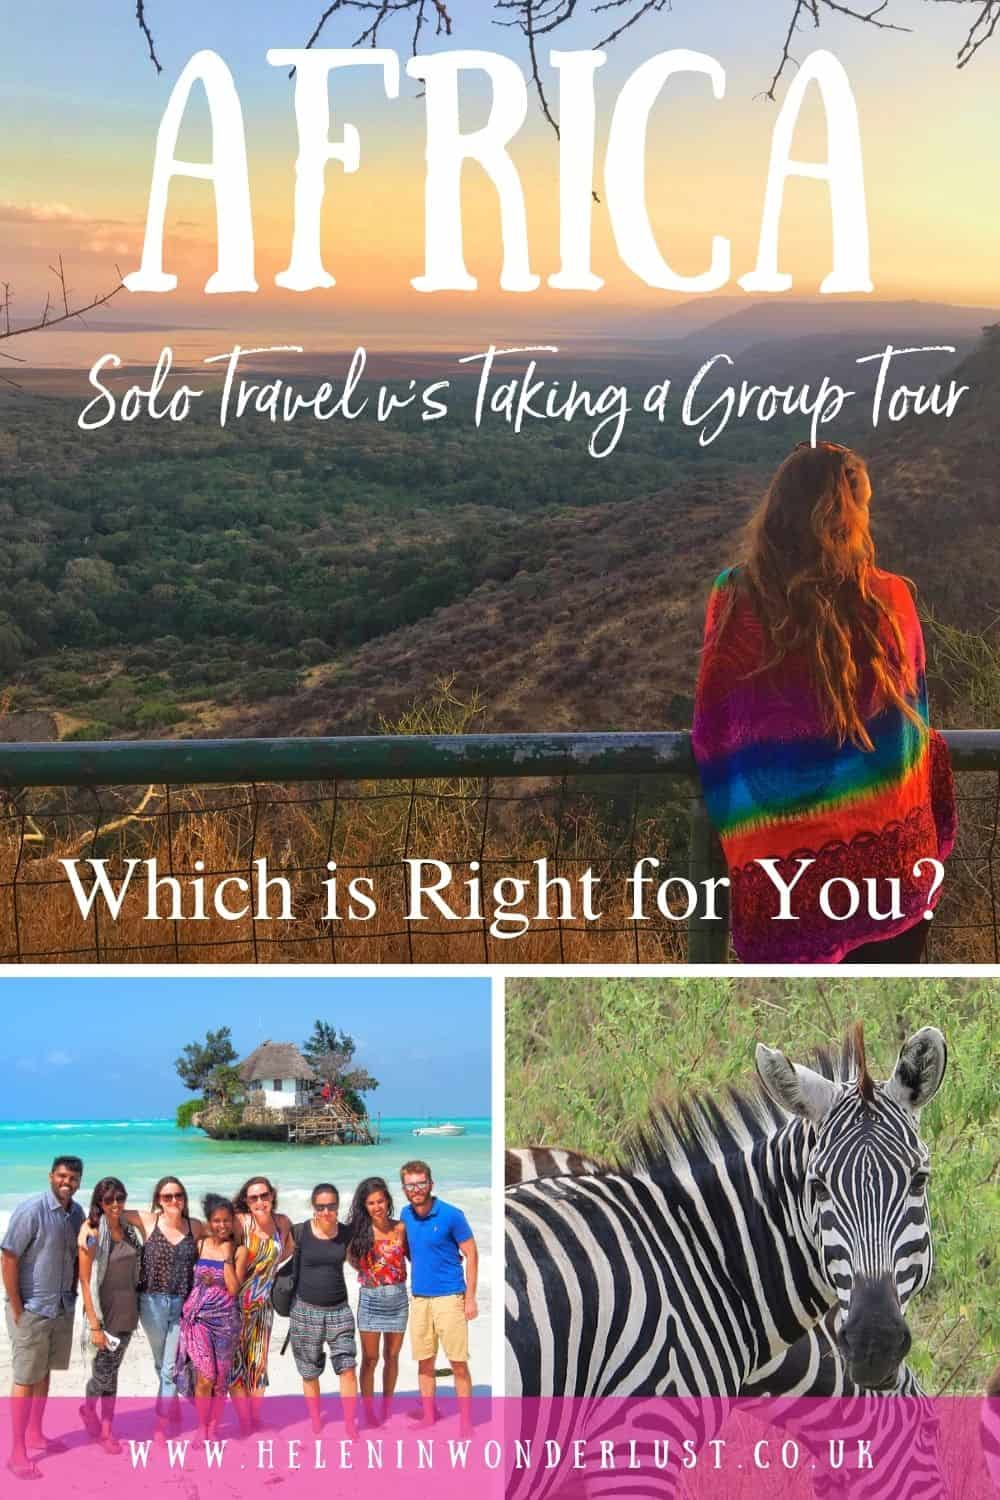 Solo Travel vs Taking a Group Tour in Africa - Which is Right for Me?